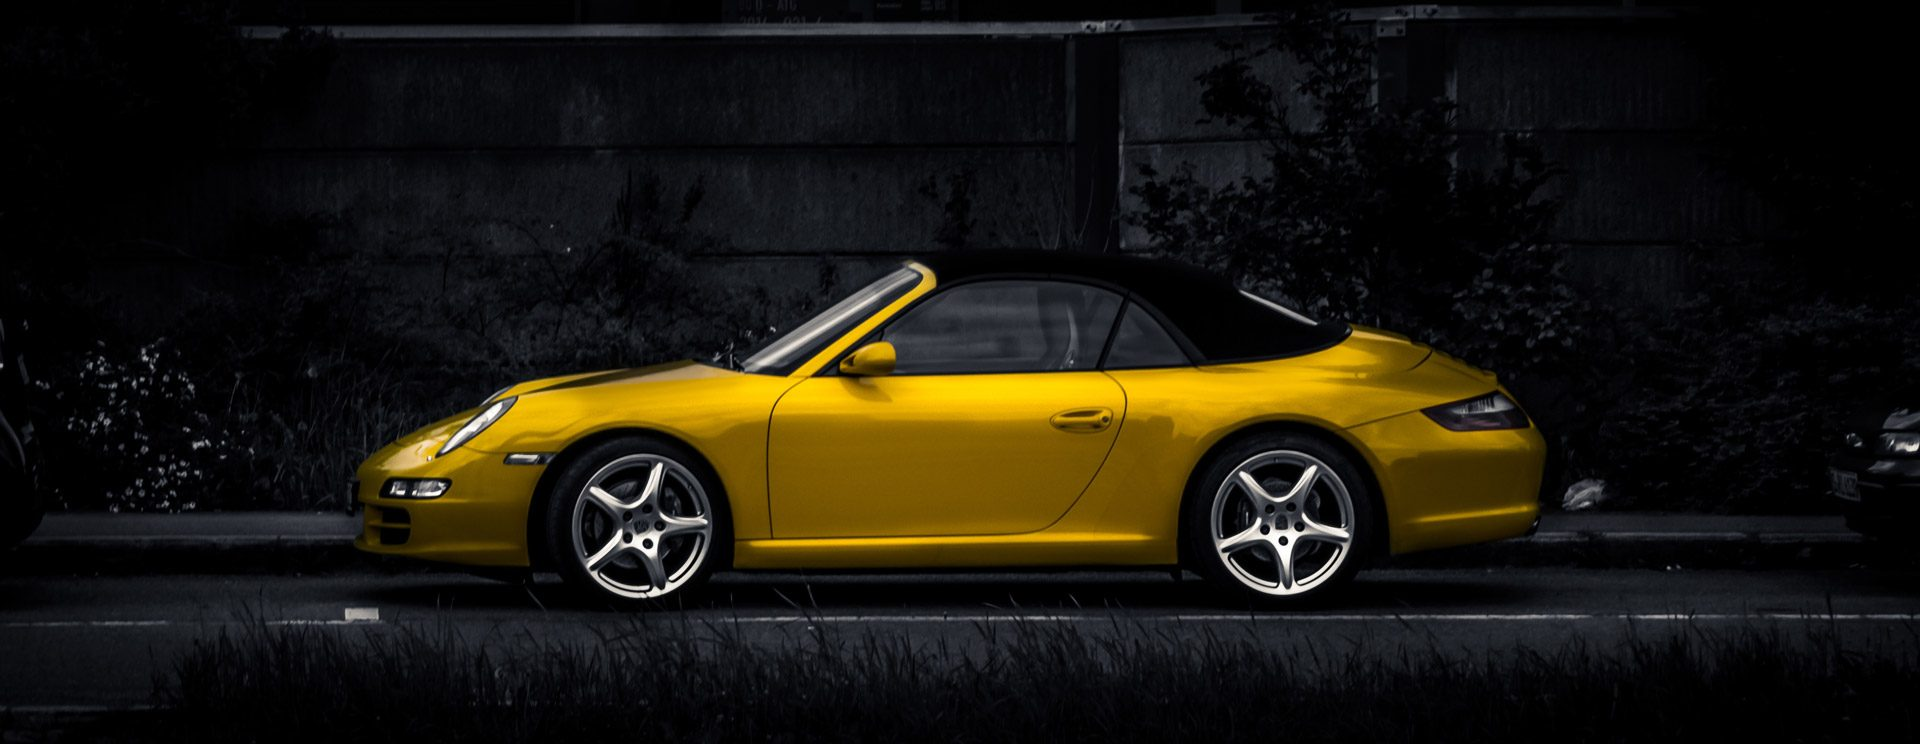 Yellow Porsche convertible needing car insurance